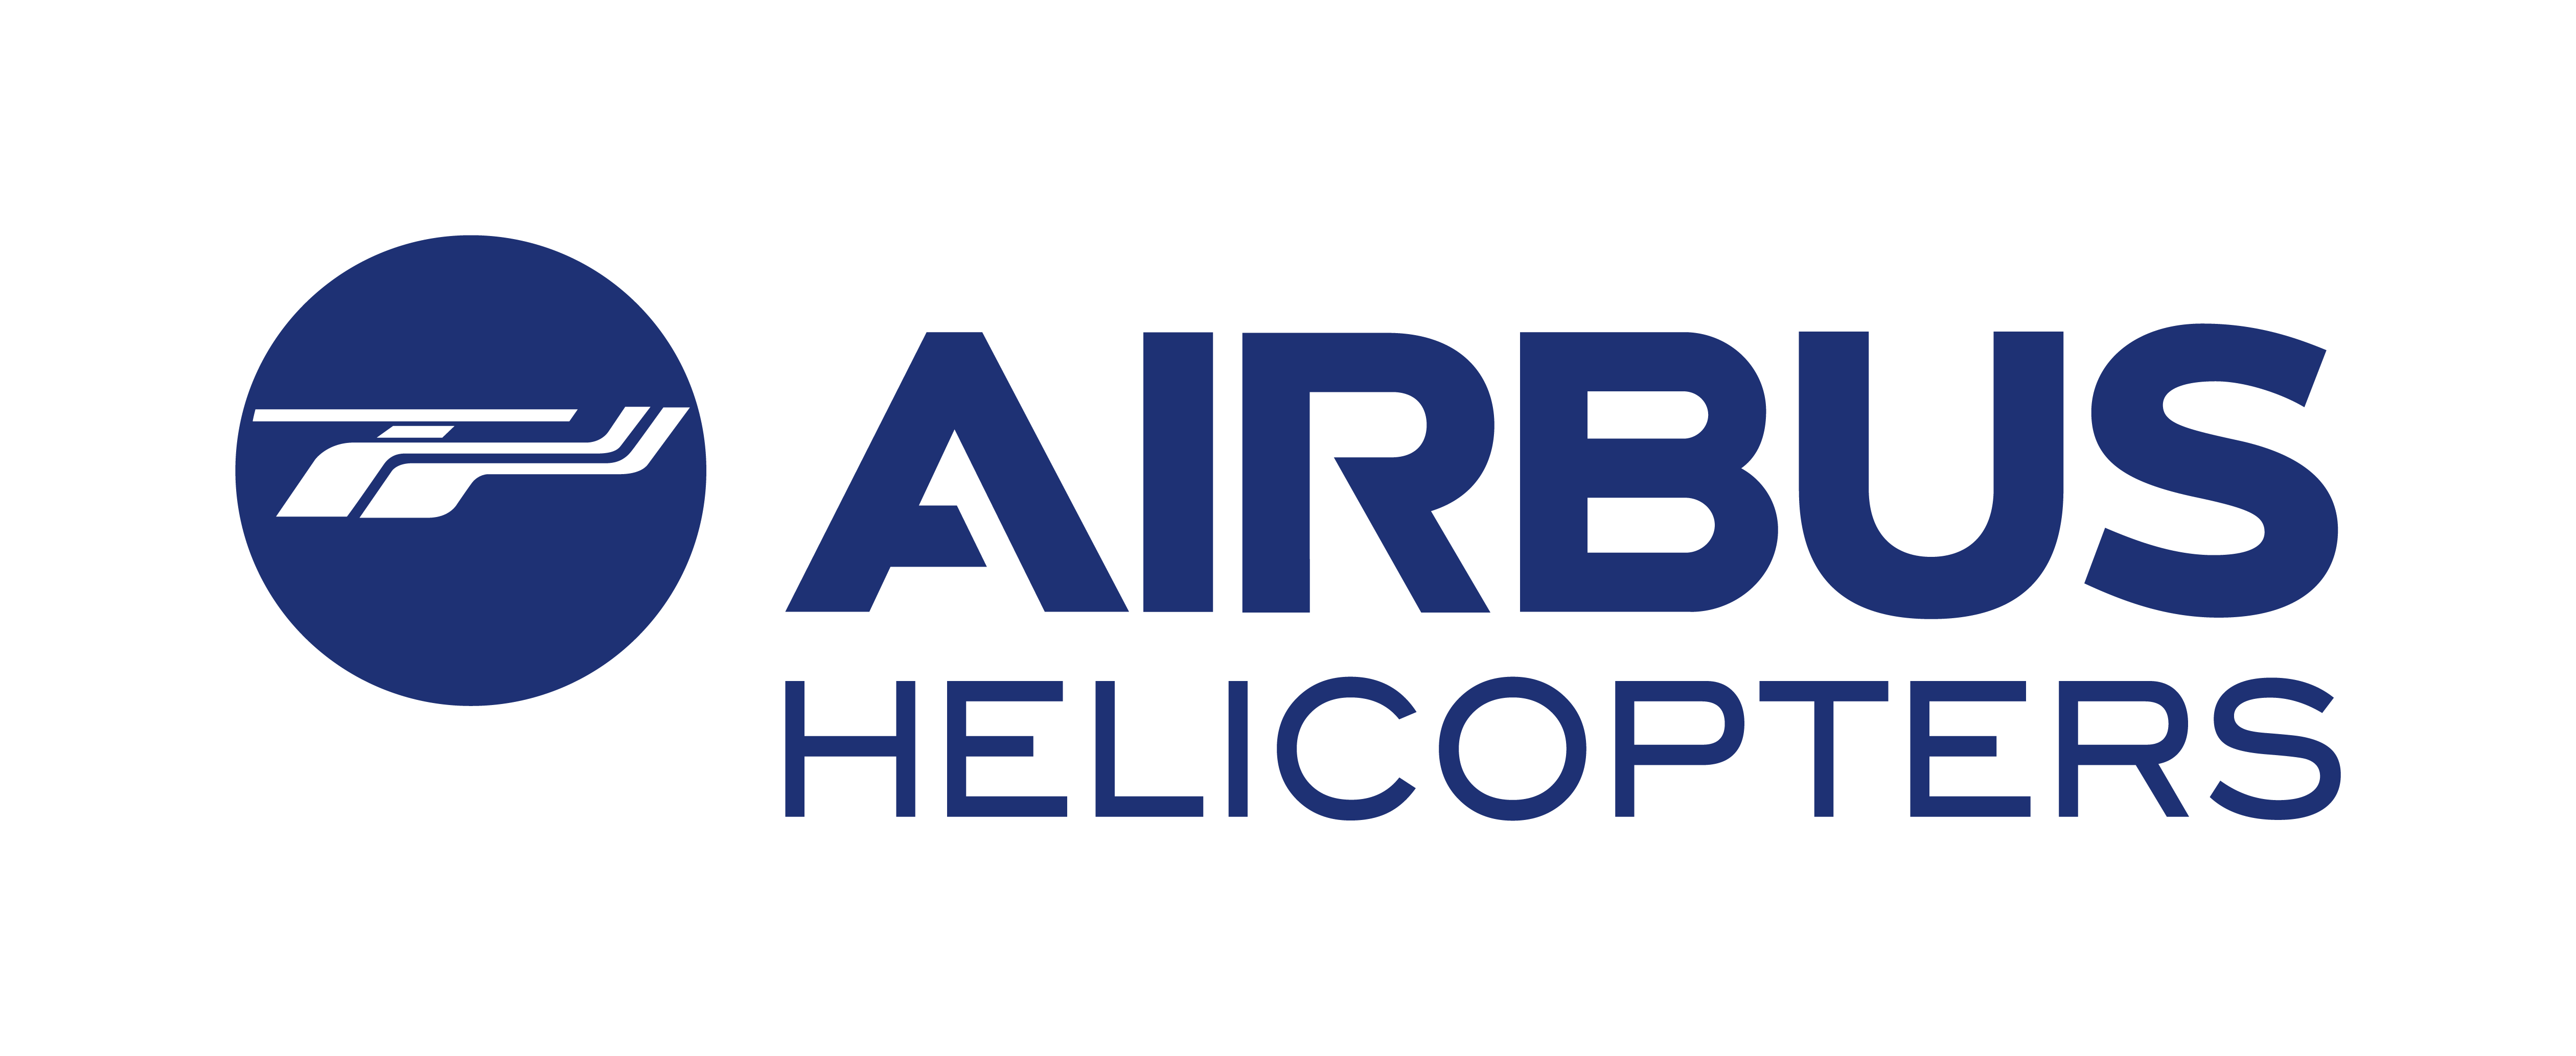 airbus-helicopters.gif